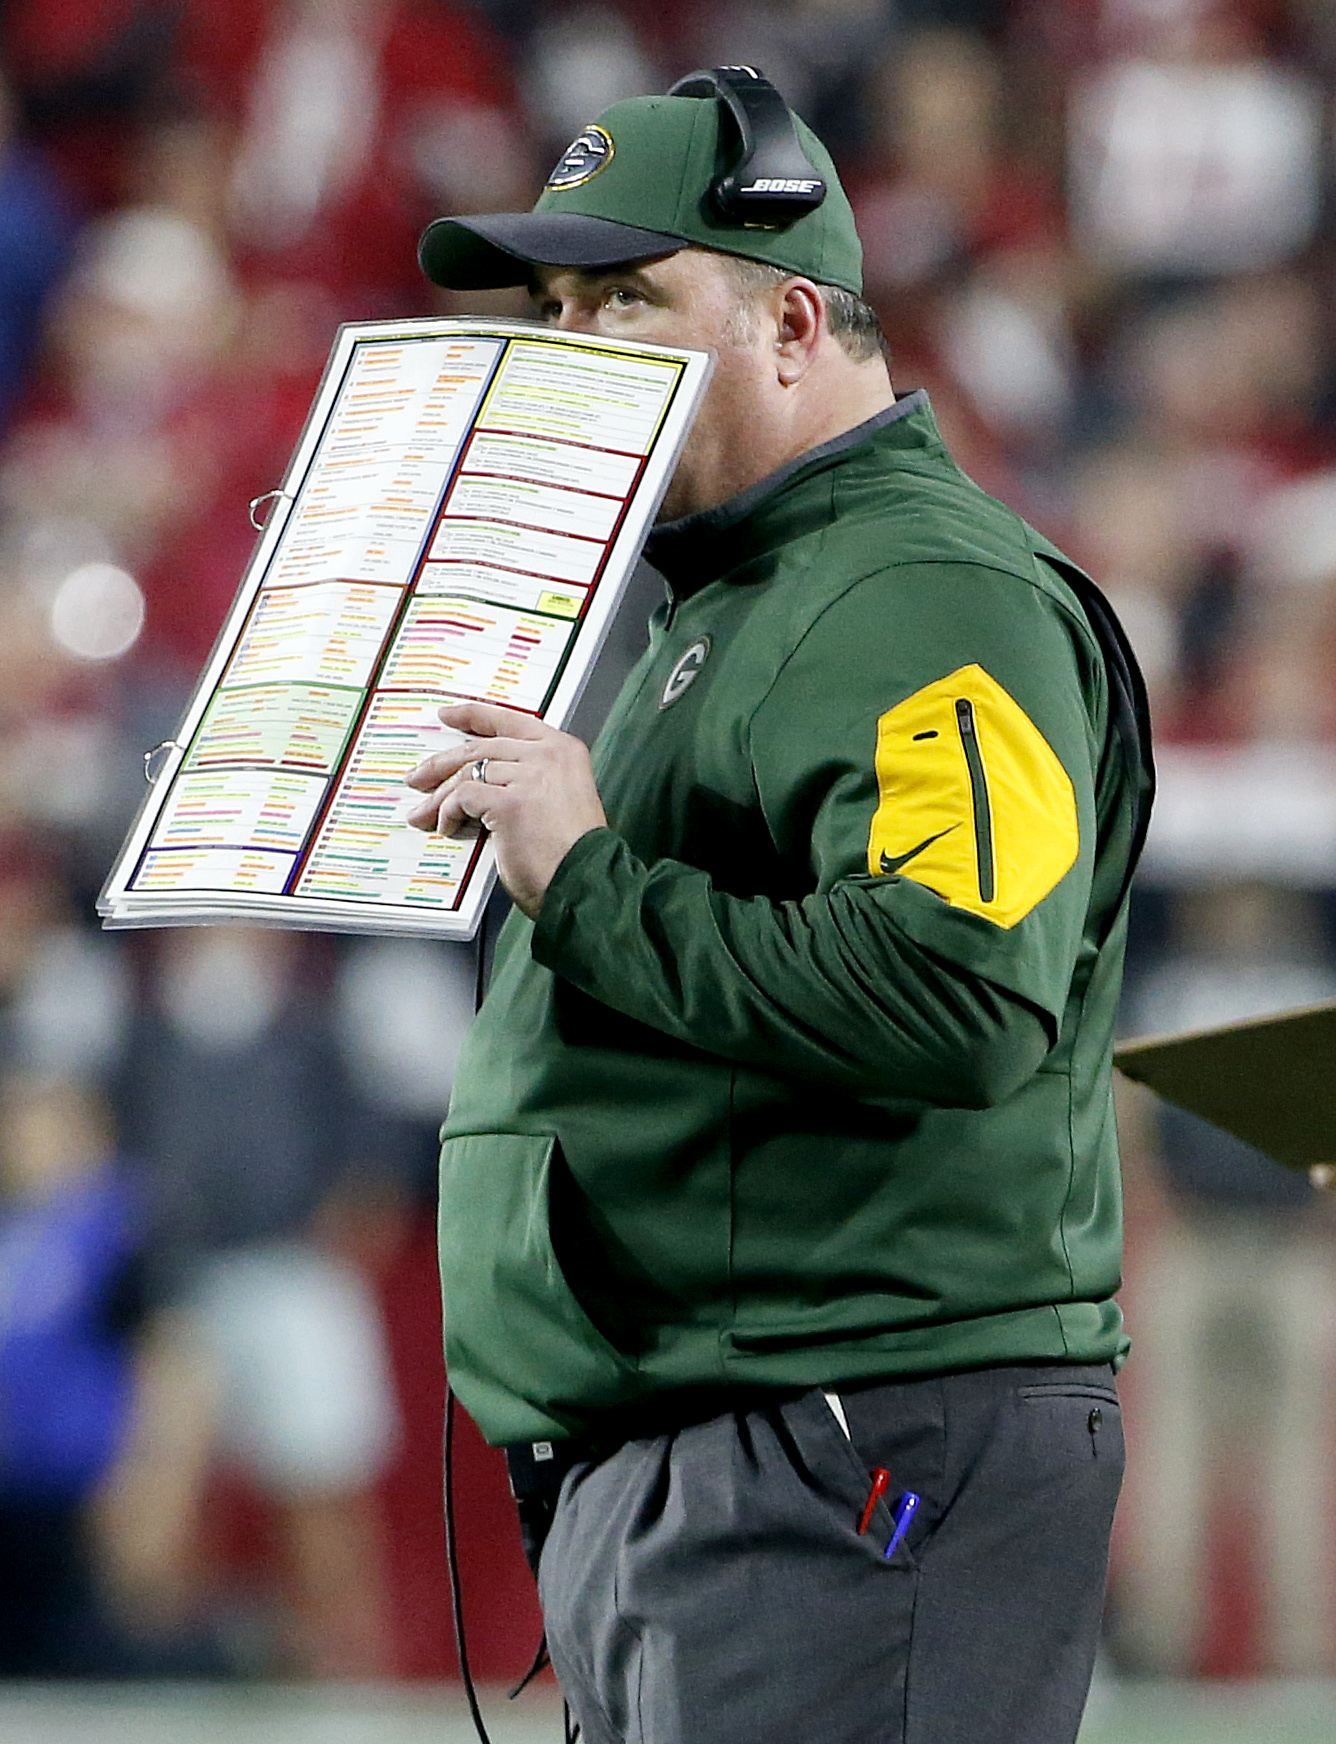 Green Bay Packers head coach Mike McCarthy makes a call against the Arizona Cardinals during the second half of an NFL divisional playoff football game, Saturday, Jan. 16, 2016, in Glendale, Ariz. (AP Photo/Ross D. Franklin)